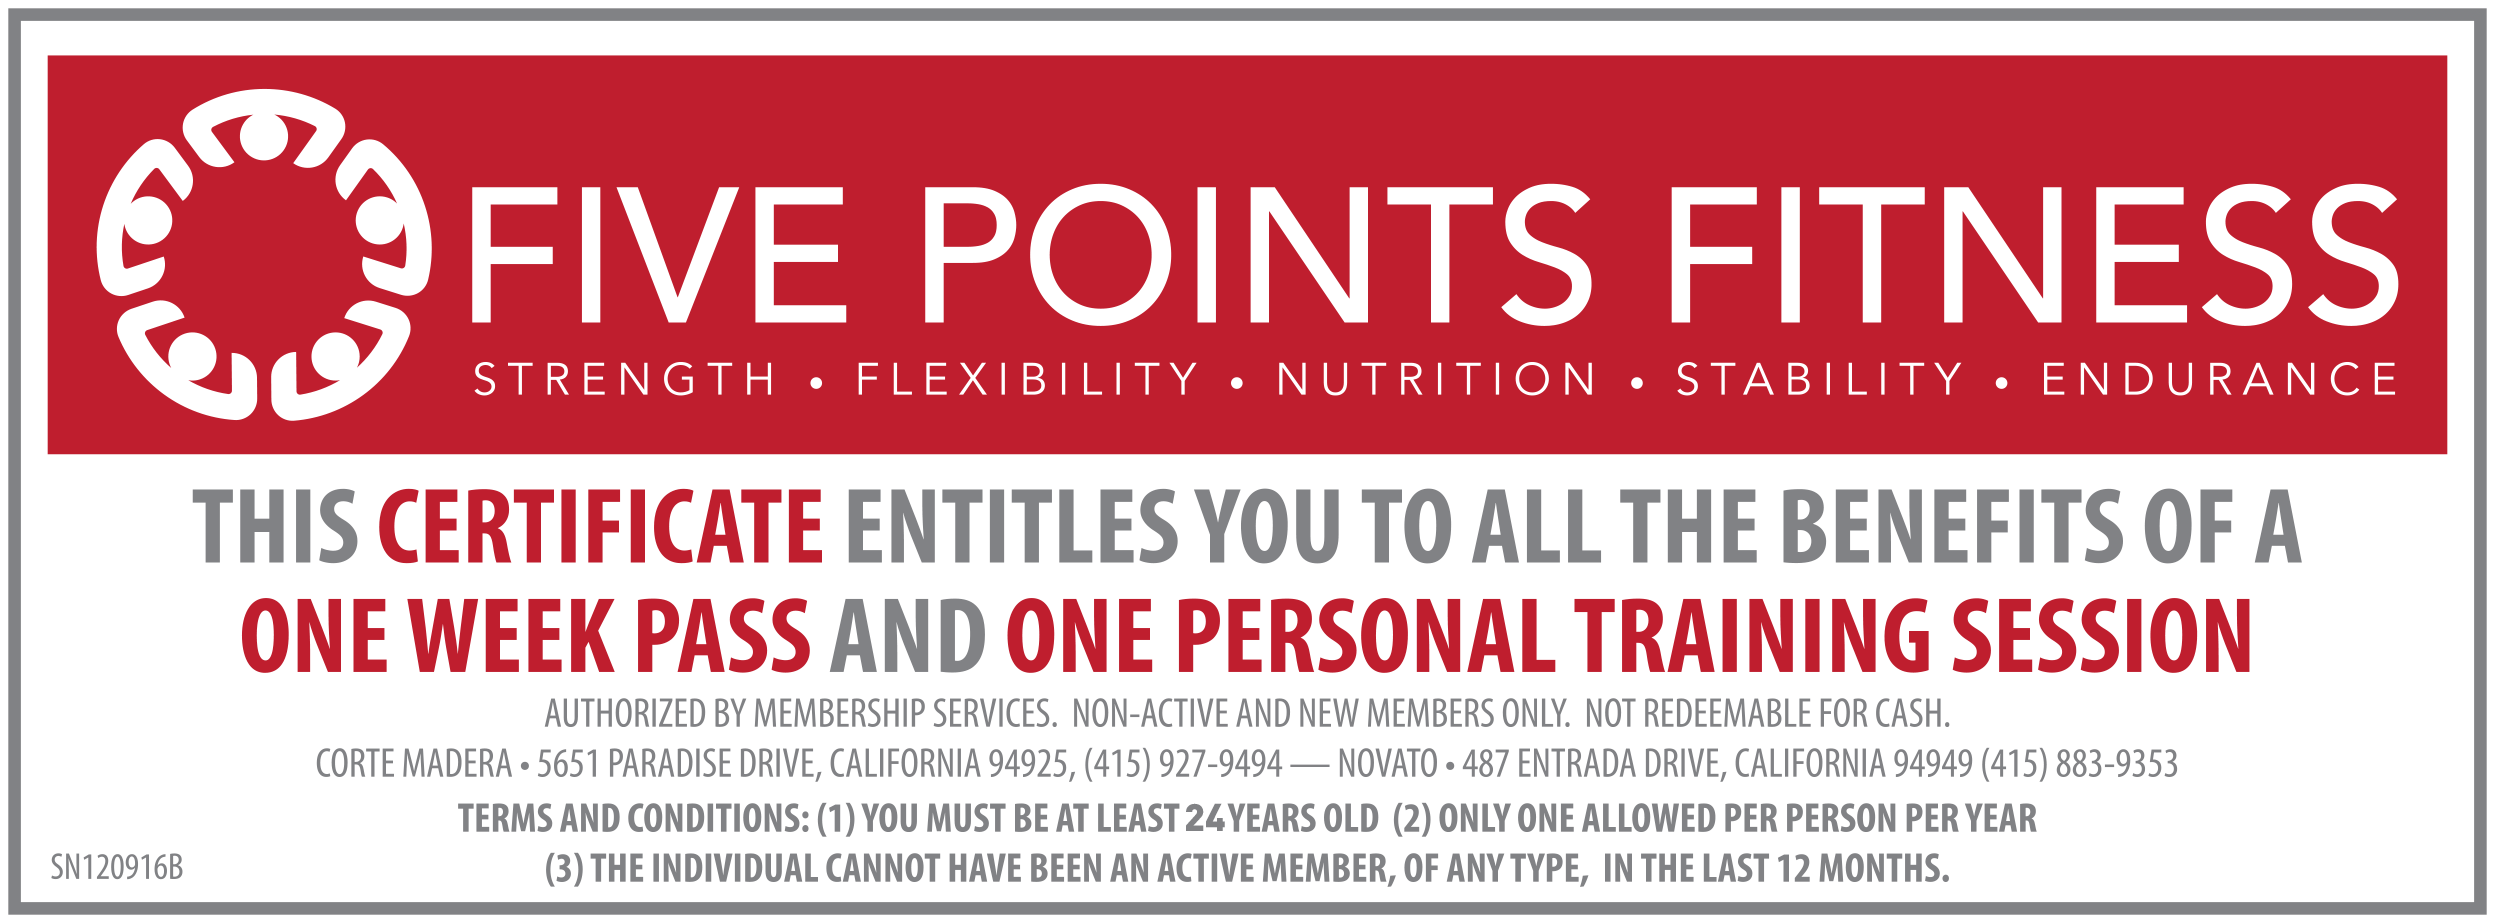 five-points-fitness-online-week-pass